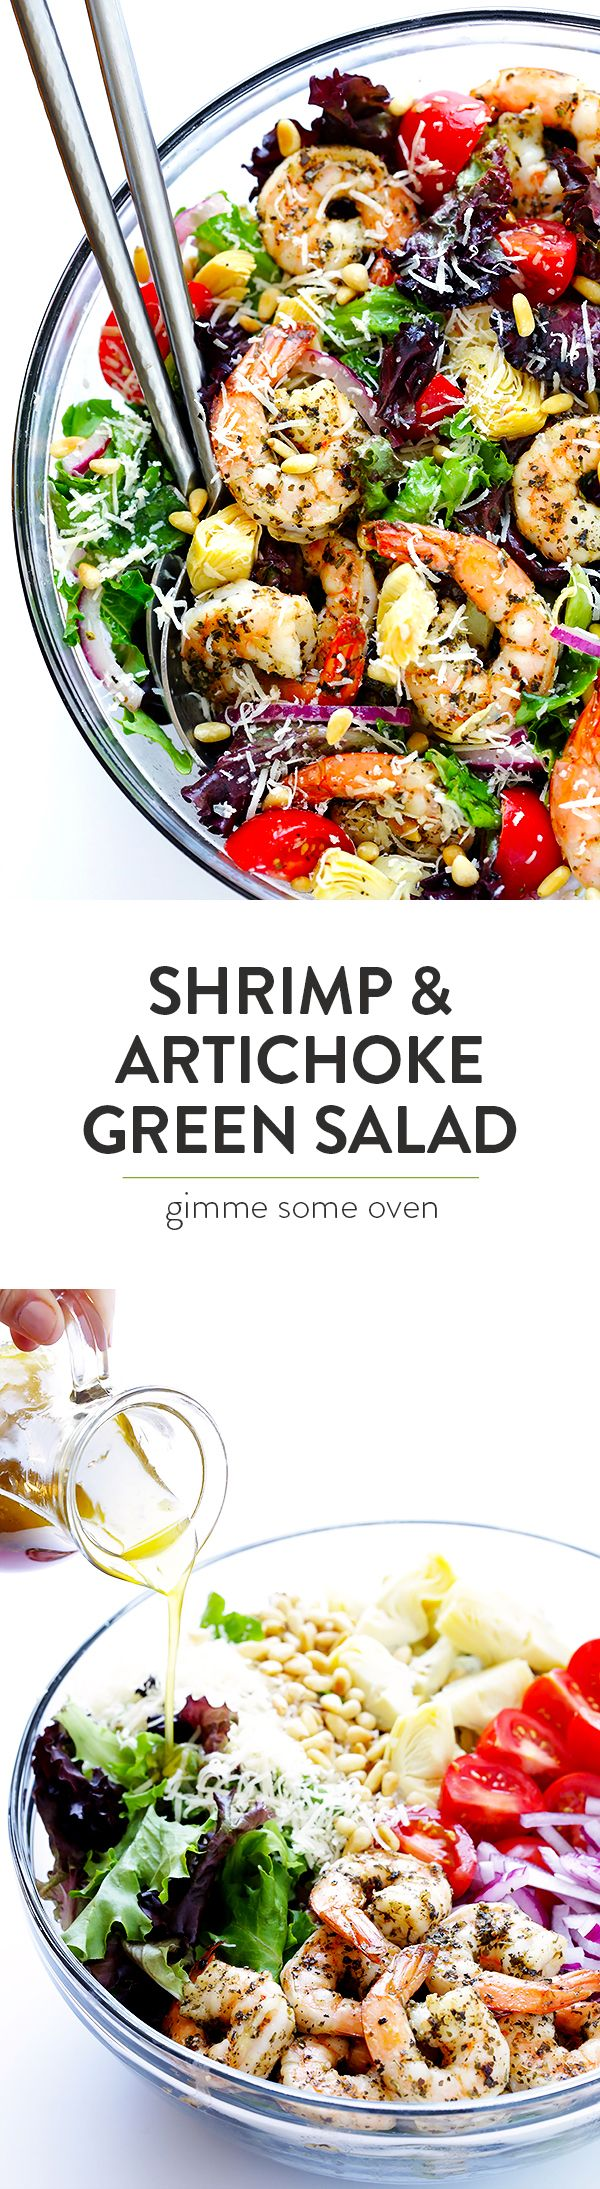 This Shrimp and Artichoke Green Salad is made with easy Italian-herb shrimp, artichoke hearts, tomatoes, pine nuts, and then it's tossed in a zesty lemon vinaigrette. It's one of my all-time favorite salads! | gimmesomeoven.com